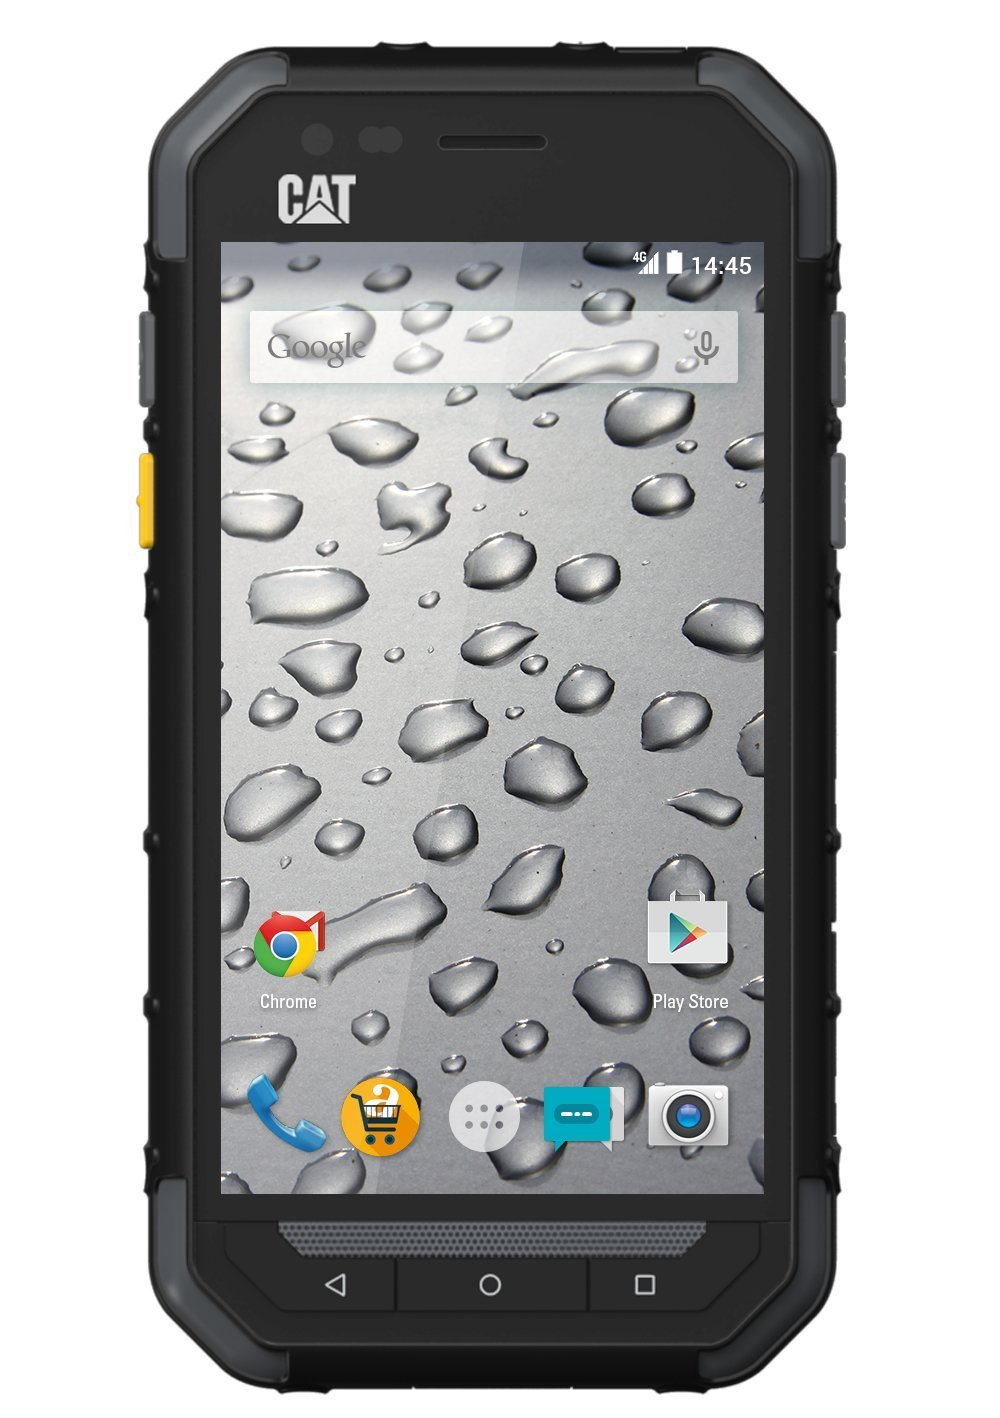 Cat Phones S60 Rugged Waterproof Smartphone With Circuit Diagram Communication Motorola 2000 Cell Phone S30 S31 S40 S41